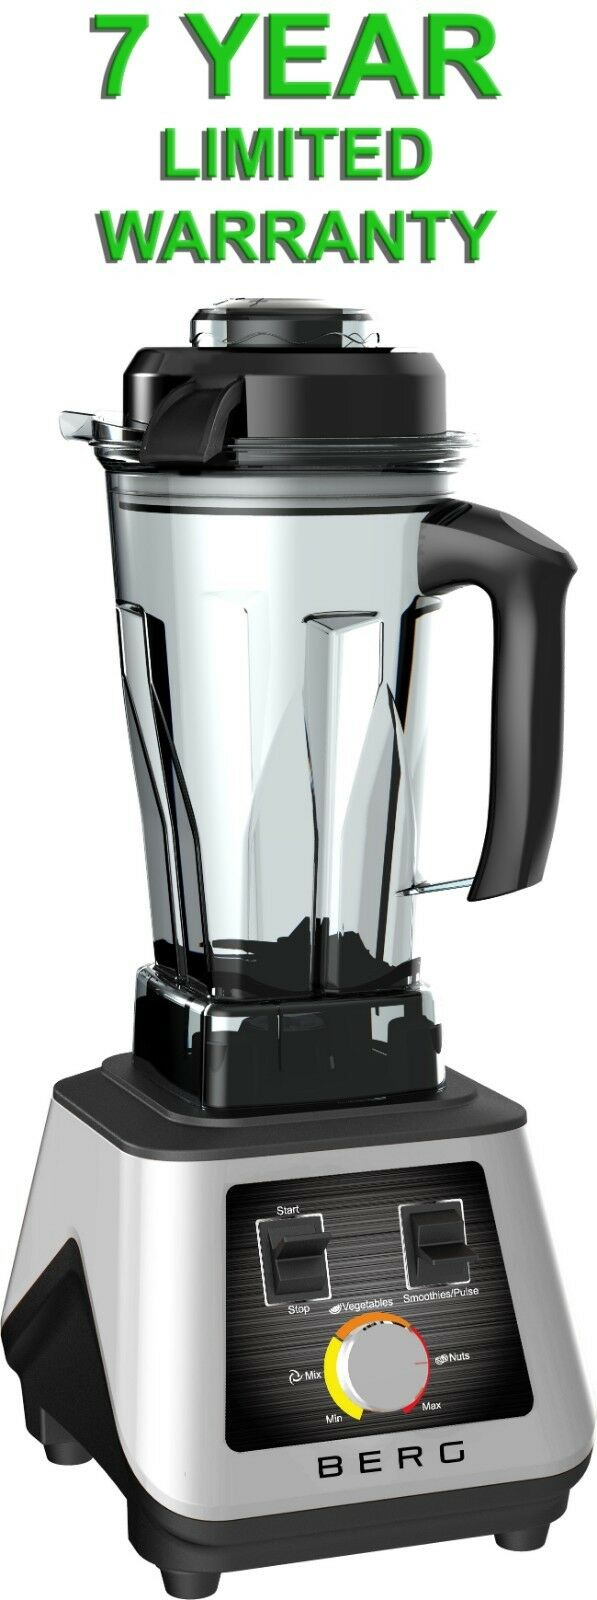 Berg 1500 W 2HP COMMERCIAL PROFESSIONNEL Food Nutrition Blender Smoothie Blanc